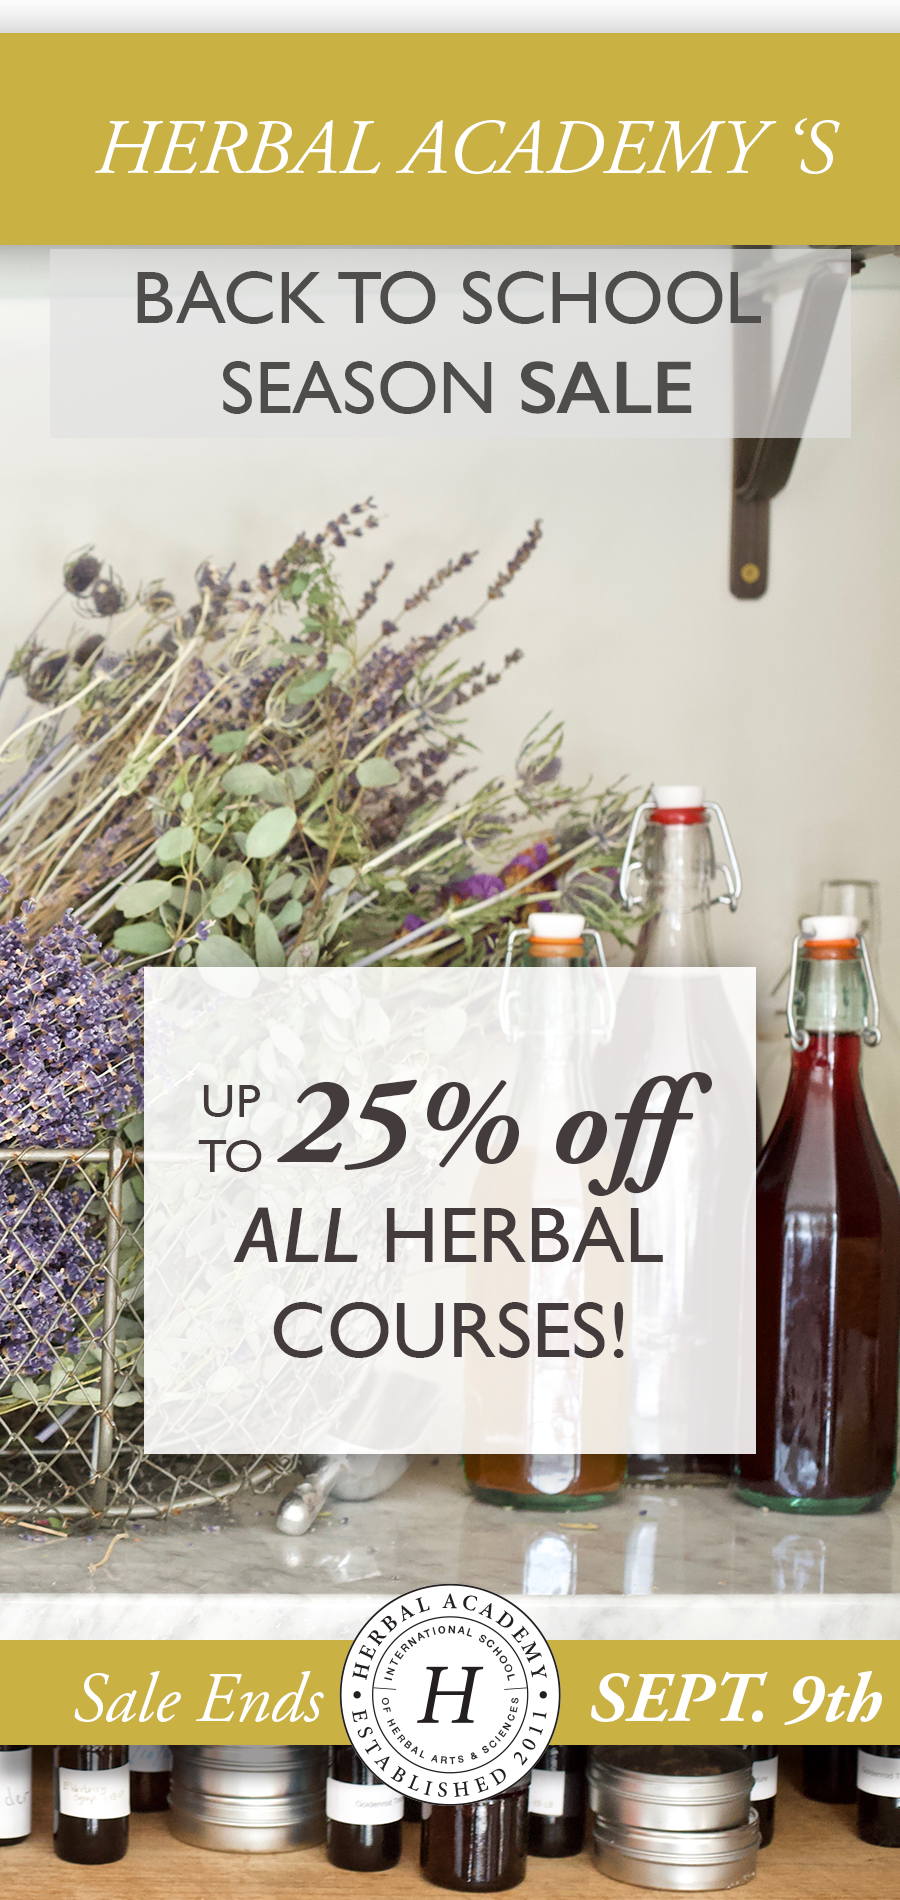 All Herbal Academy Herbal Courses on Sale Now Get up to